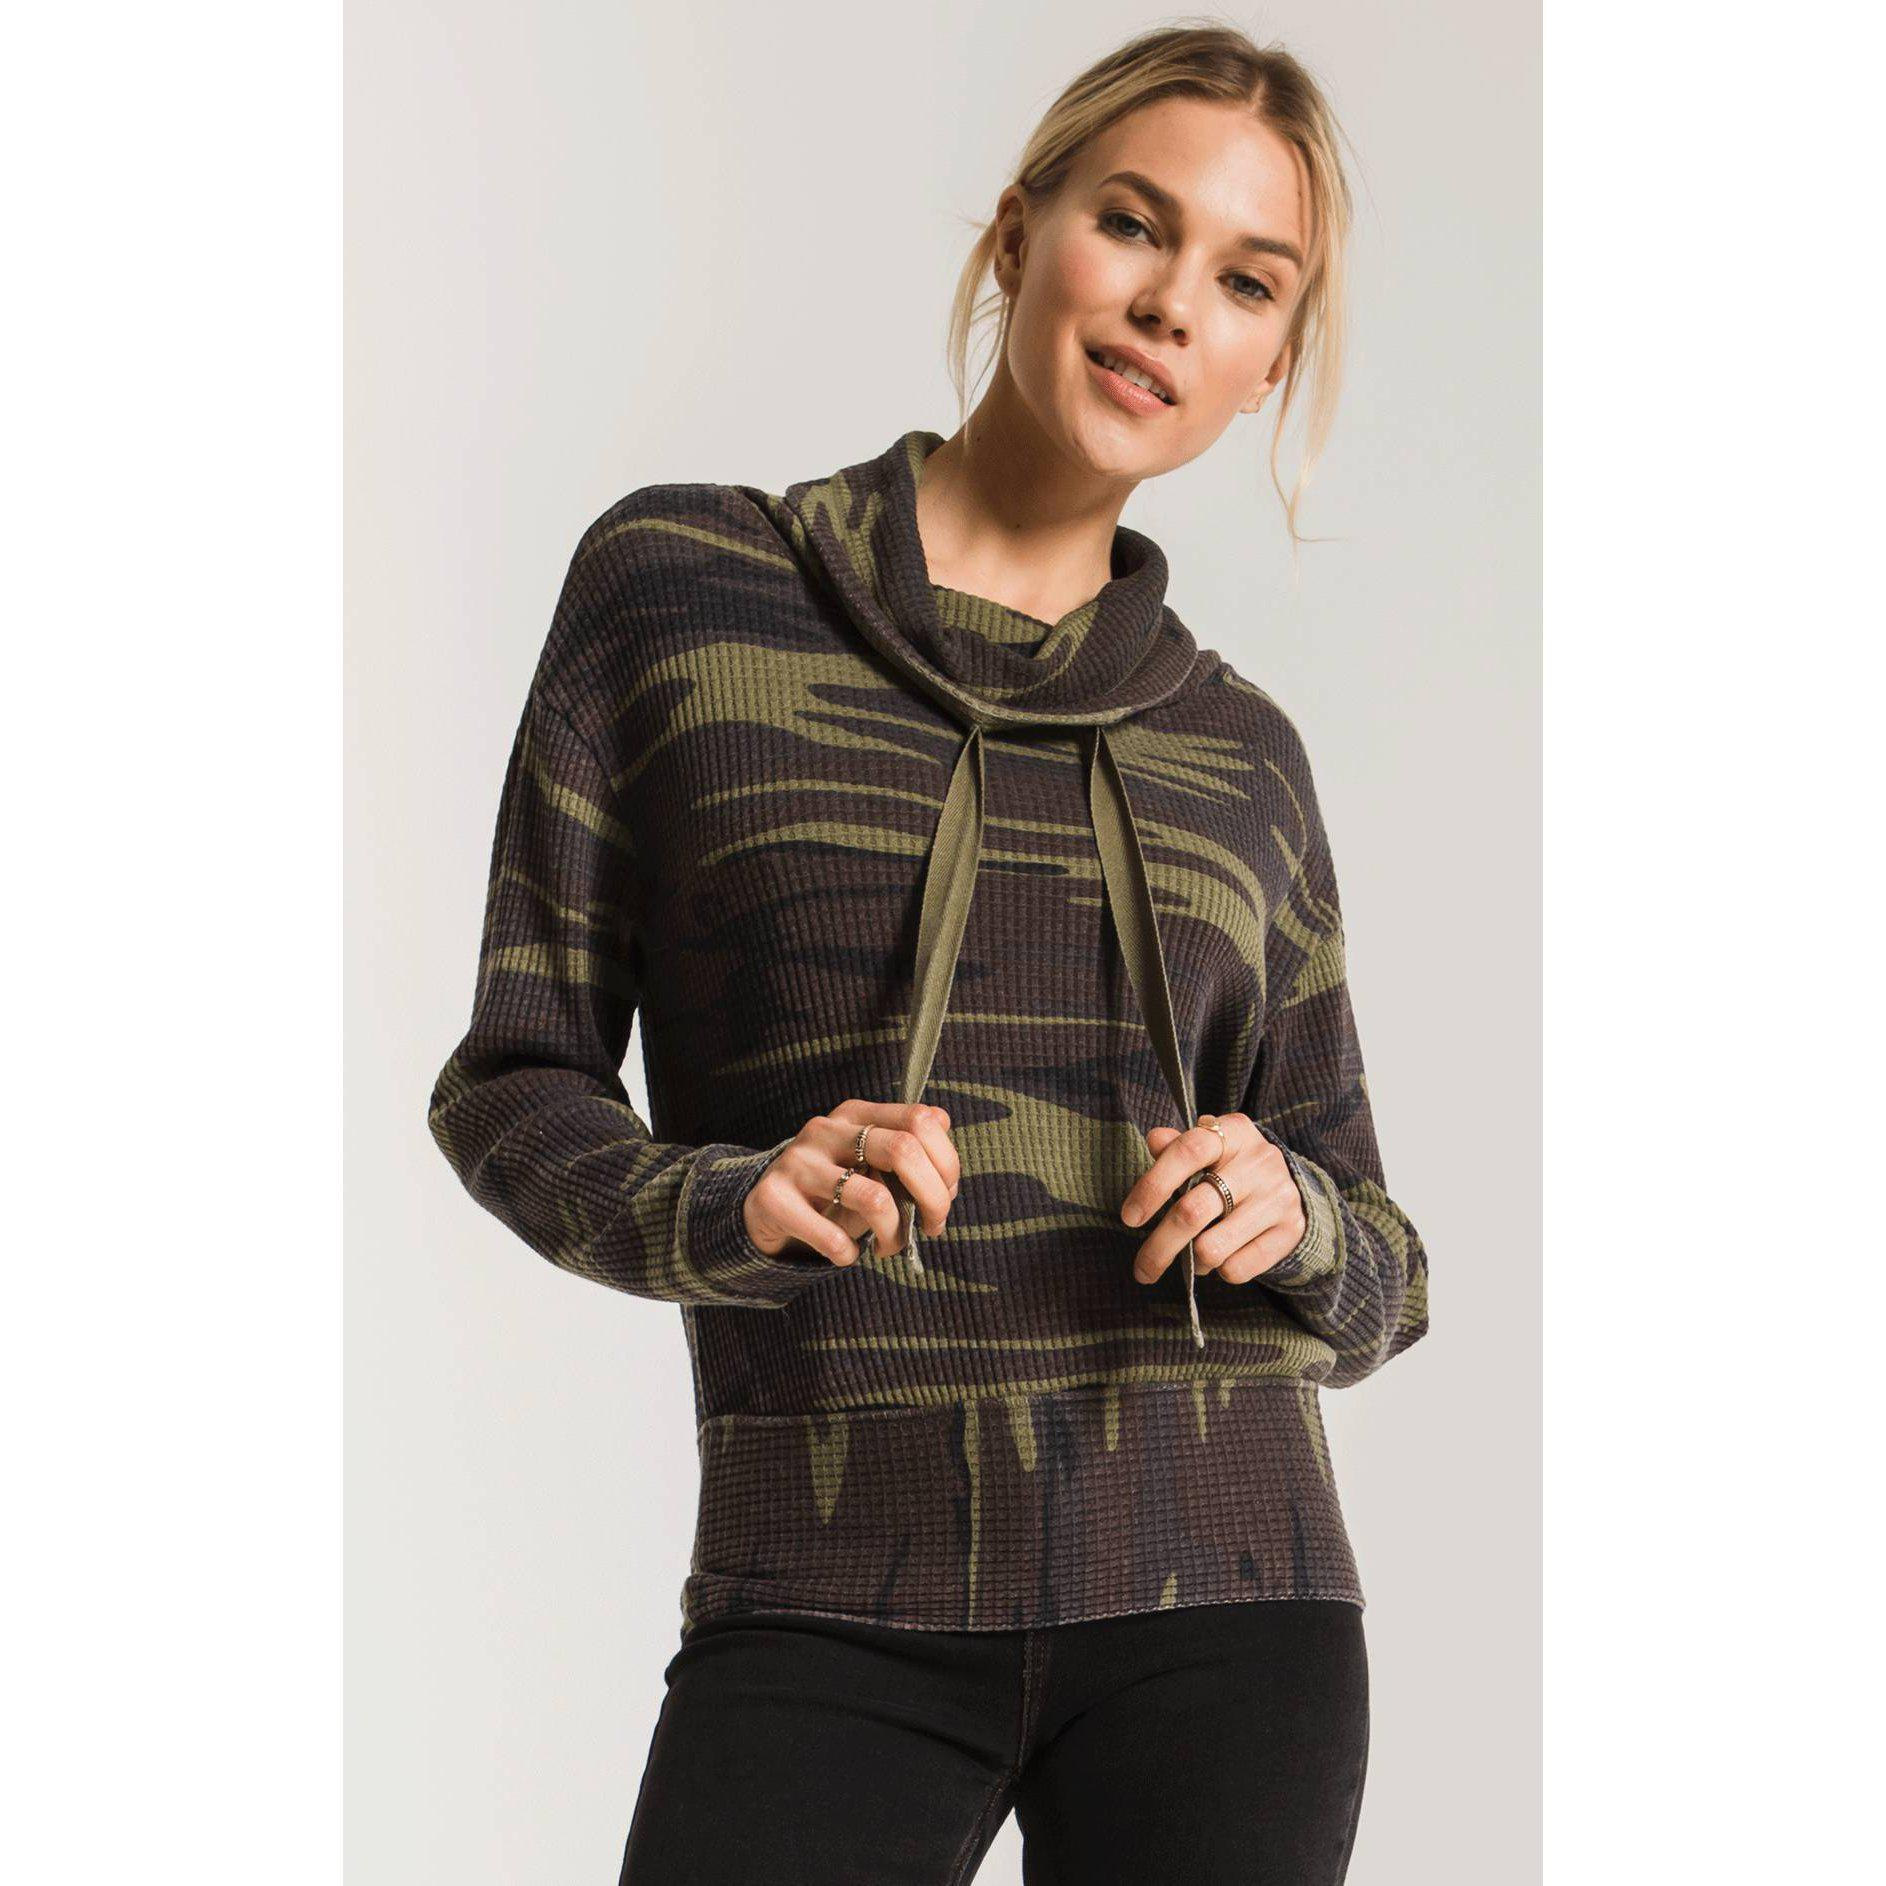 The Camo Cowl Neck Thermal Top